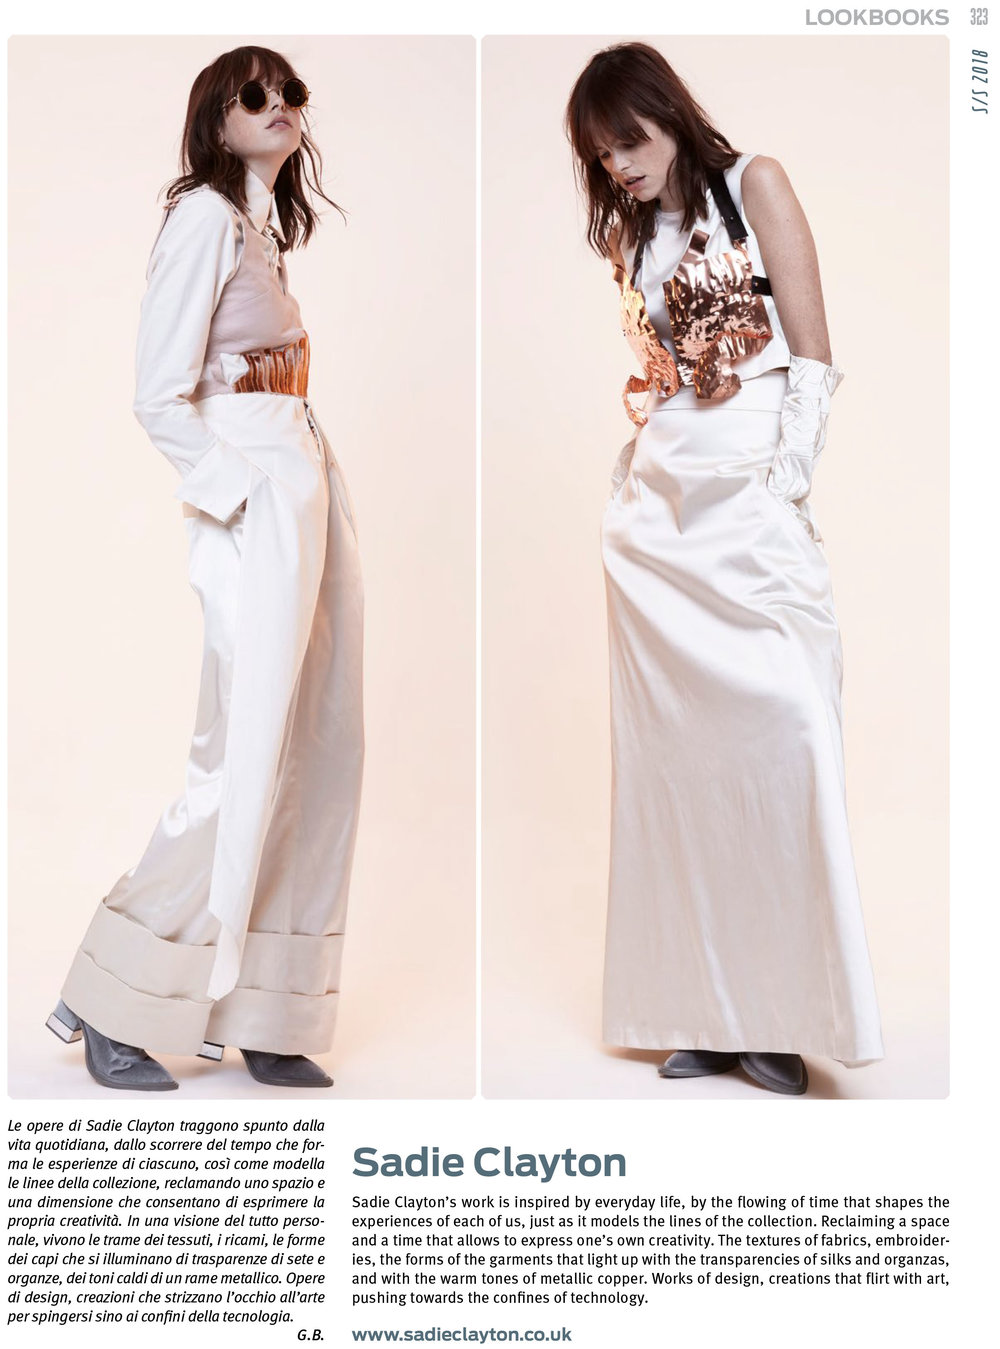 SADIE CLAYTON Lookbook_ Donna177 (dragged) 1.jpg